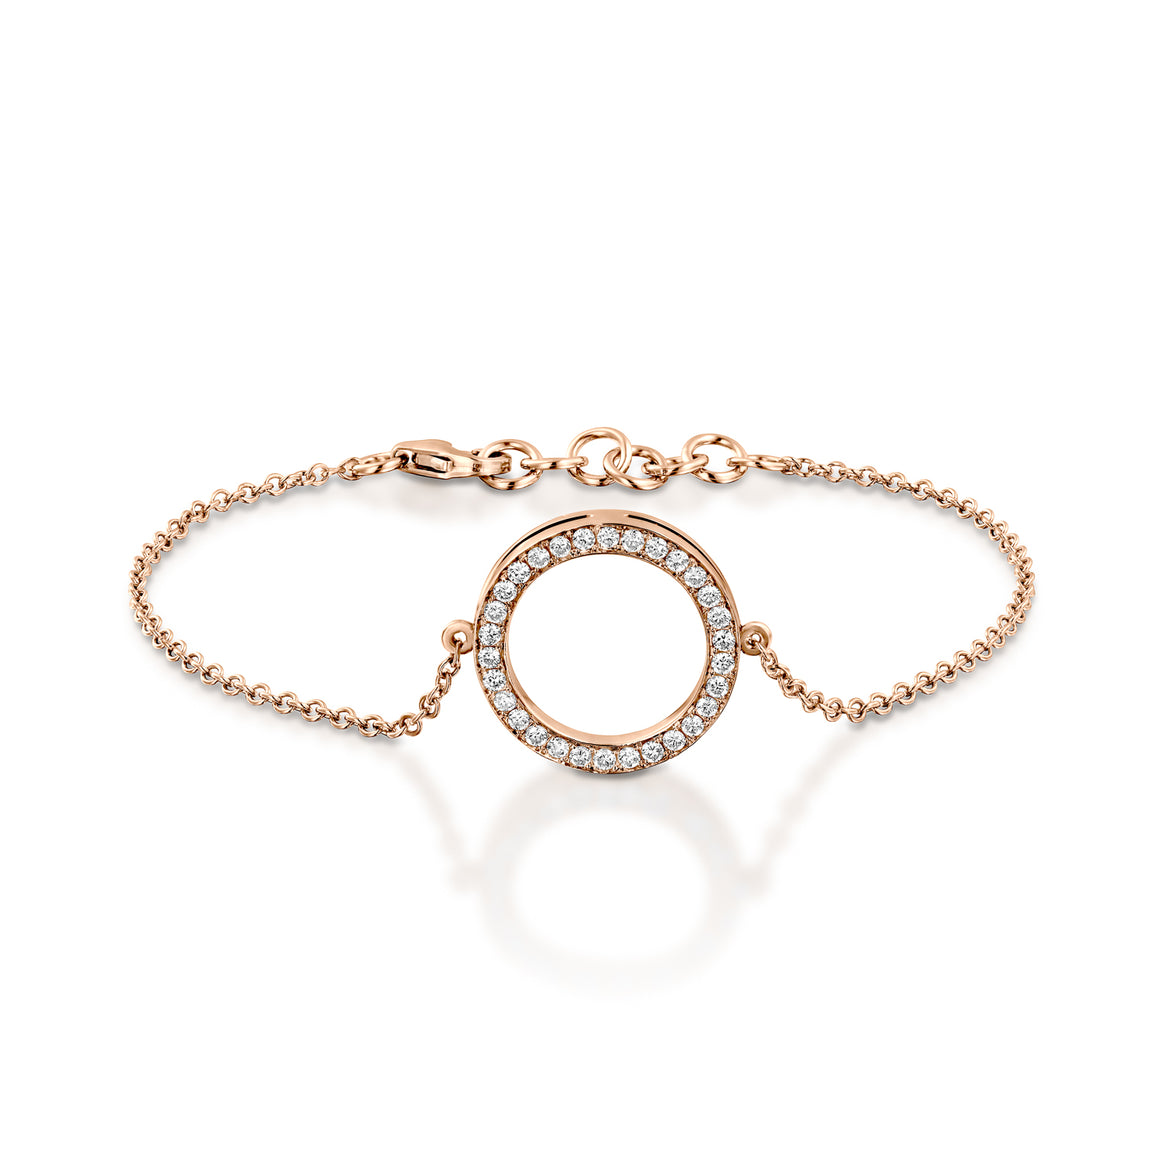 B9301-0.38 Cart Diamond chain bracelet with circle pendant - rose gold